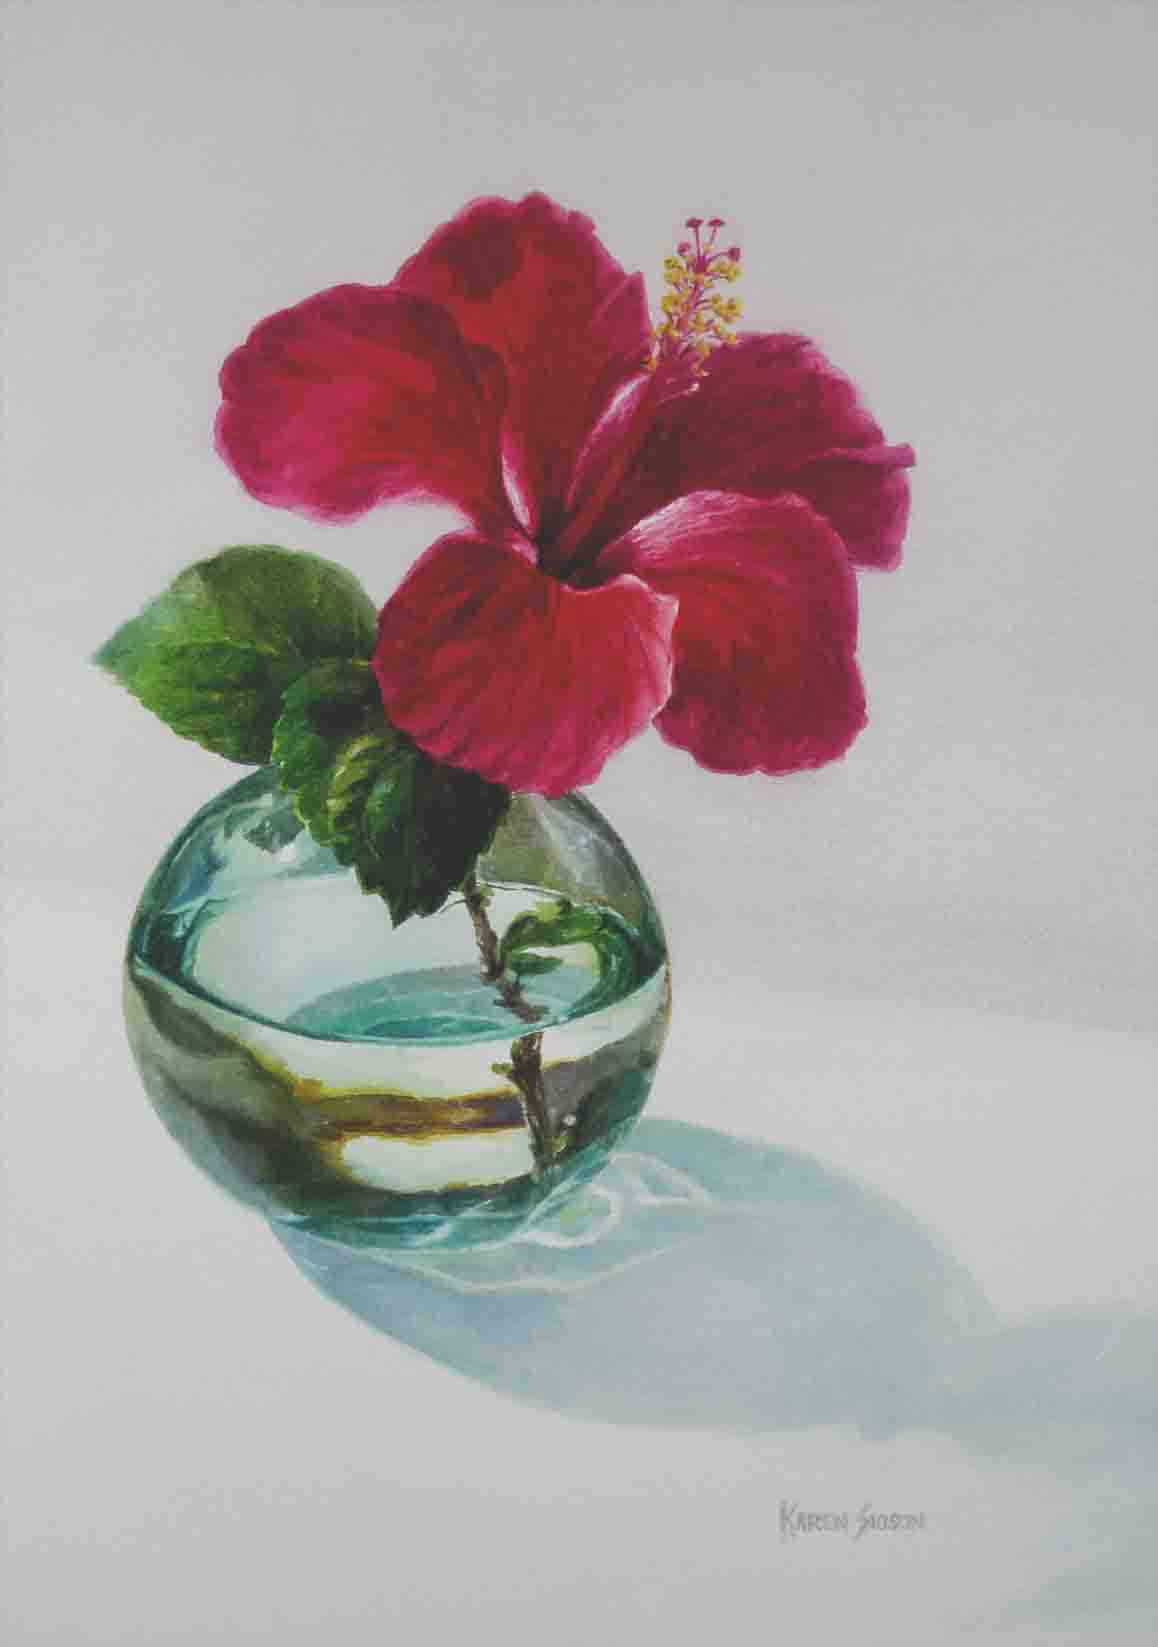 Karen Sioson_hibiscus in glass vase_1_TN